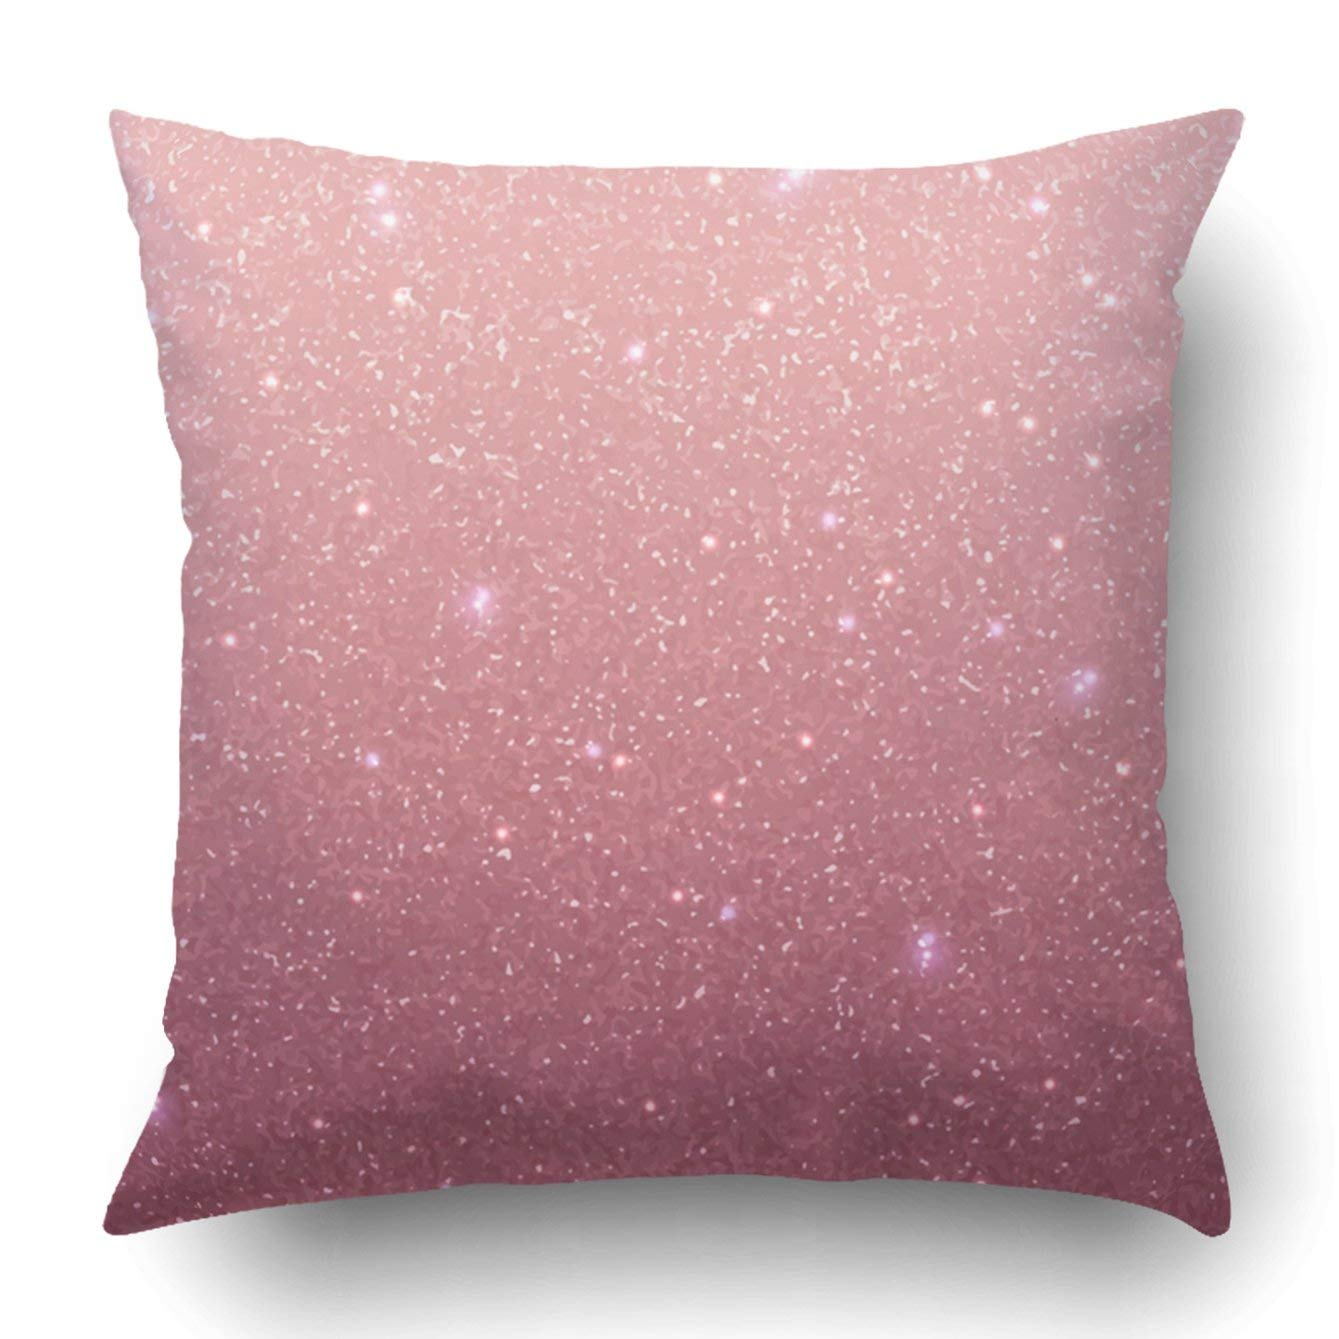 WOPOP Rose gold glitter texture Rose sequins Pink sparkle pattern Pillowcase Throw Pillow Cover Case 16x16 inches